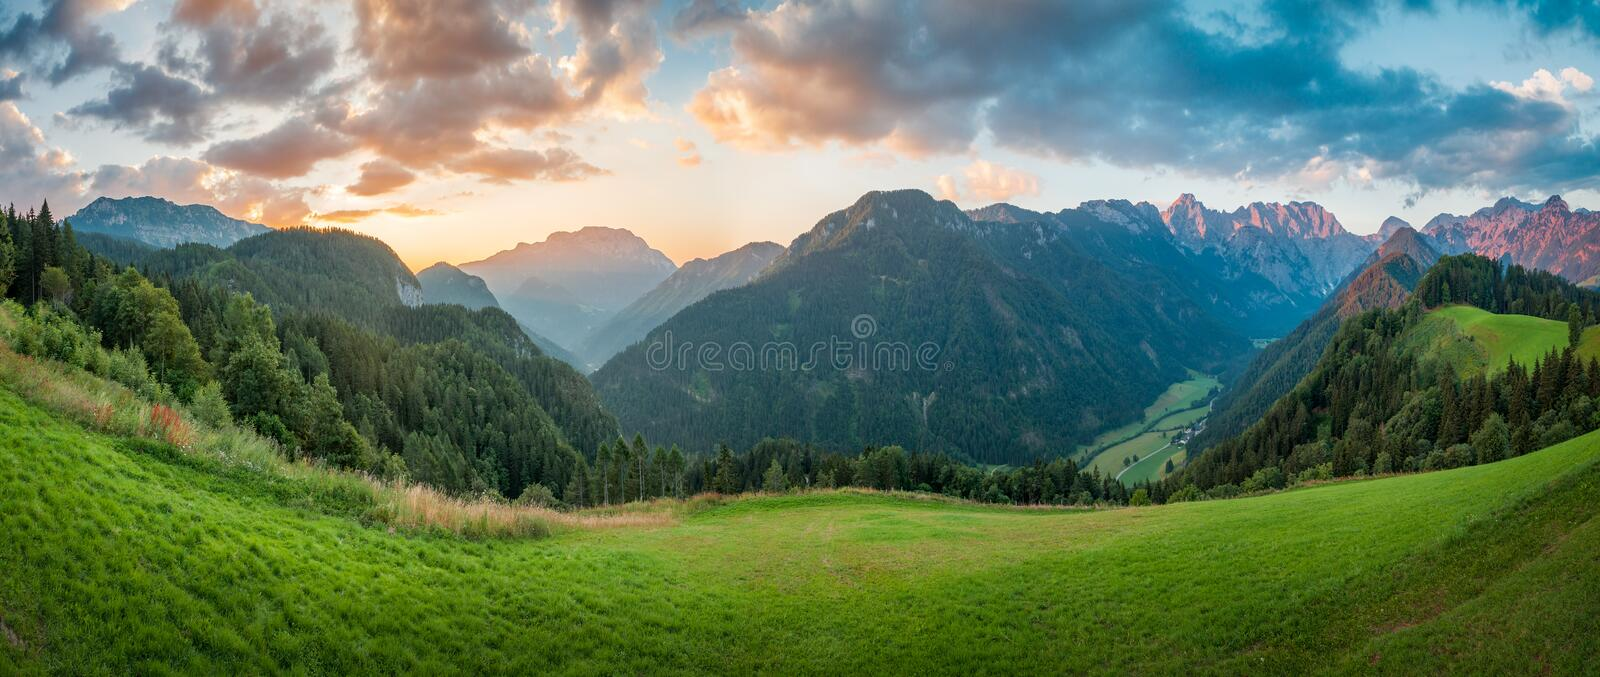 Alpes slovènes au lever de soleil, panorama photo stock